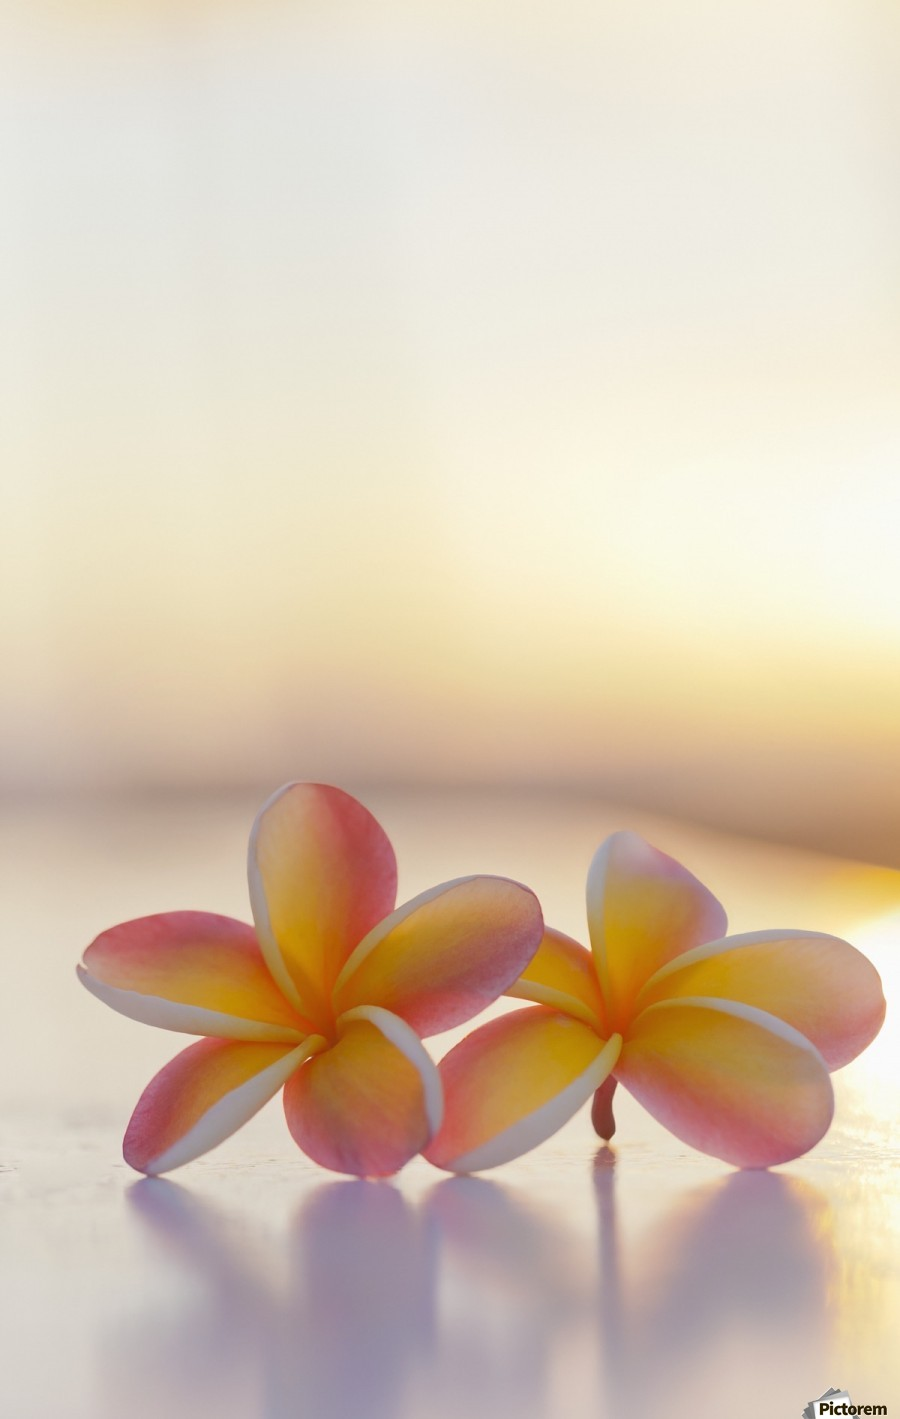 Close-up of a pair of beautiful yellow and pink Plumeria flowers (Apocynaceae) with sunset lighting the background; Honolulu, Oahu, Hawaii, United States of America  Print